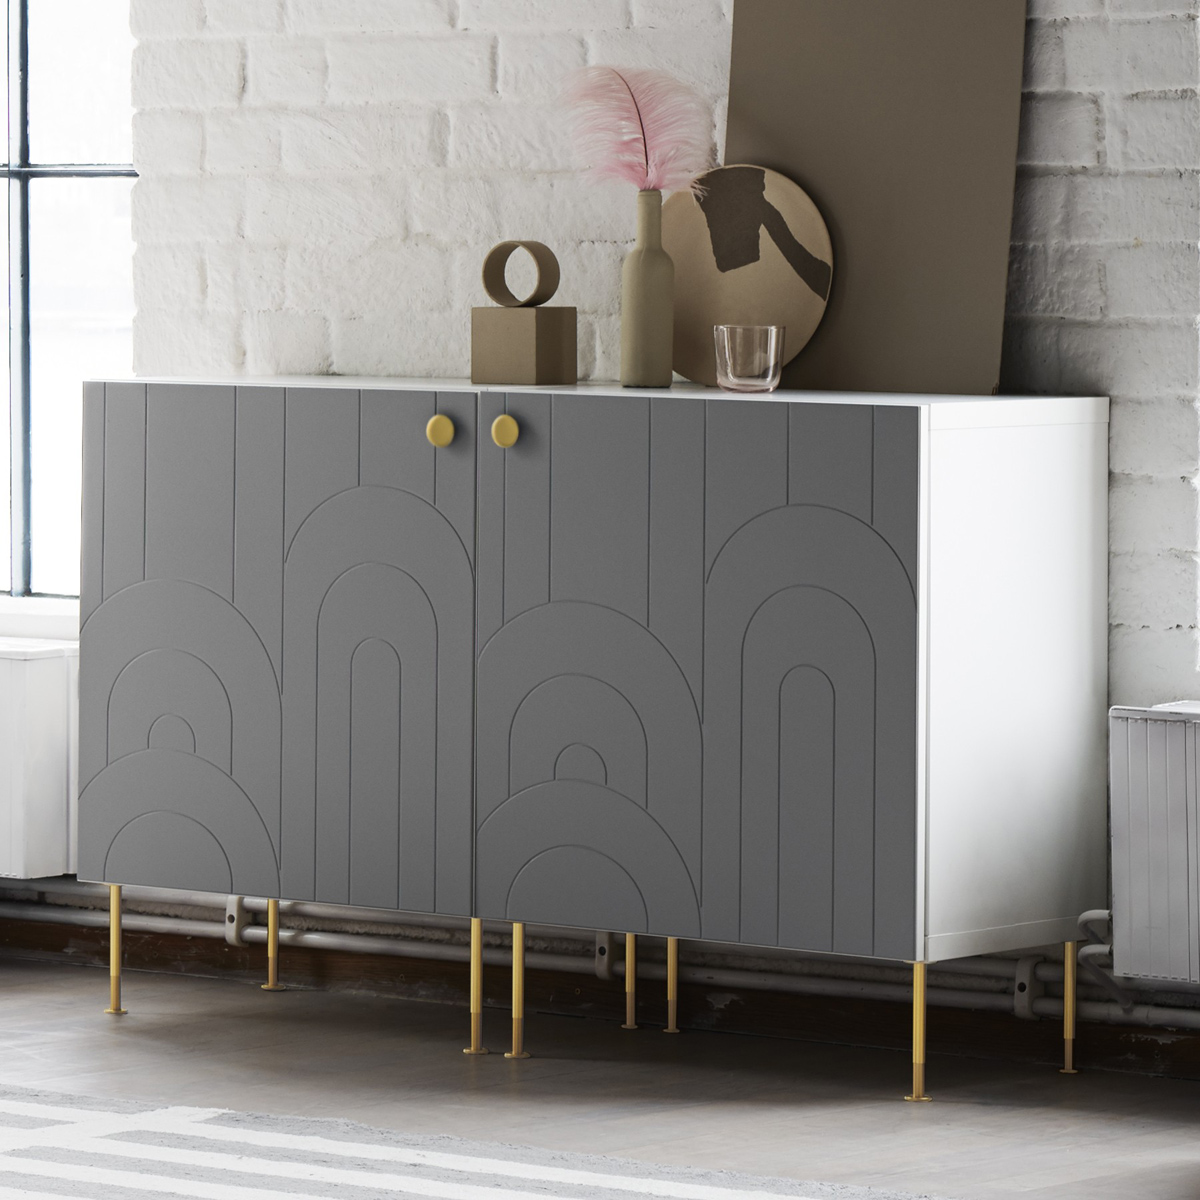 Knobs Legs And Fronts To Customize Ikea Furniture